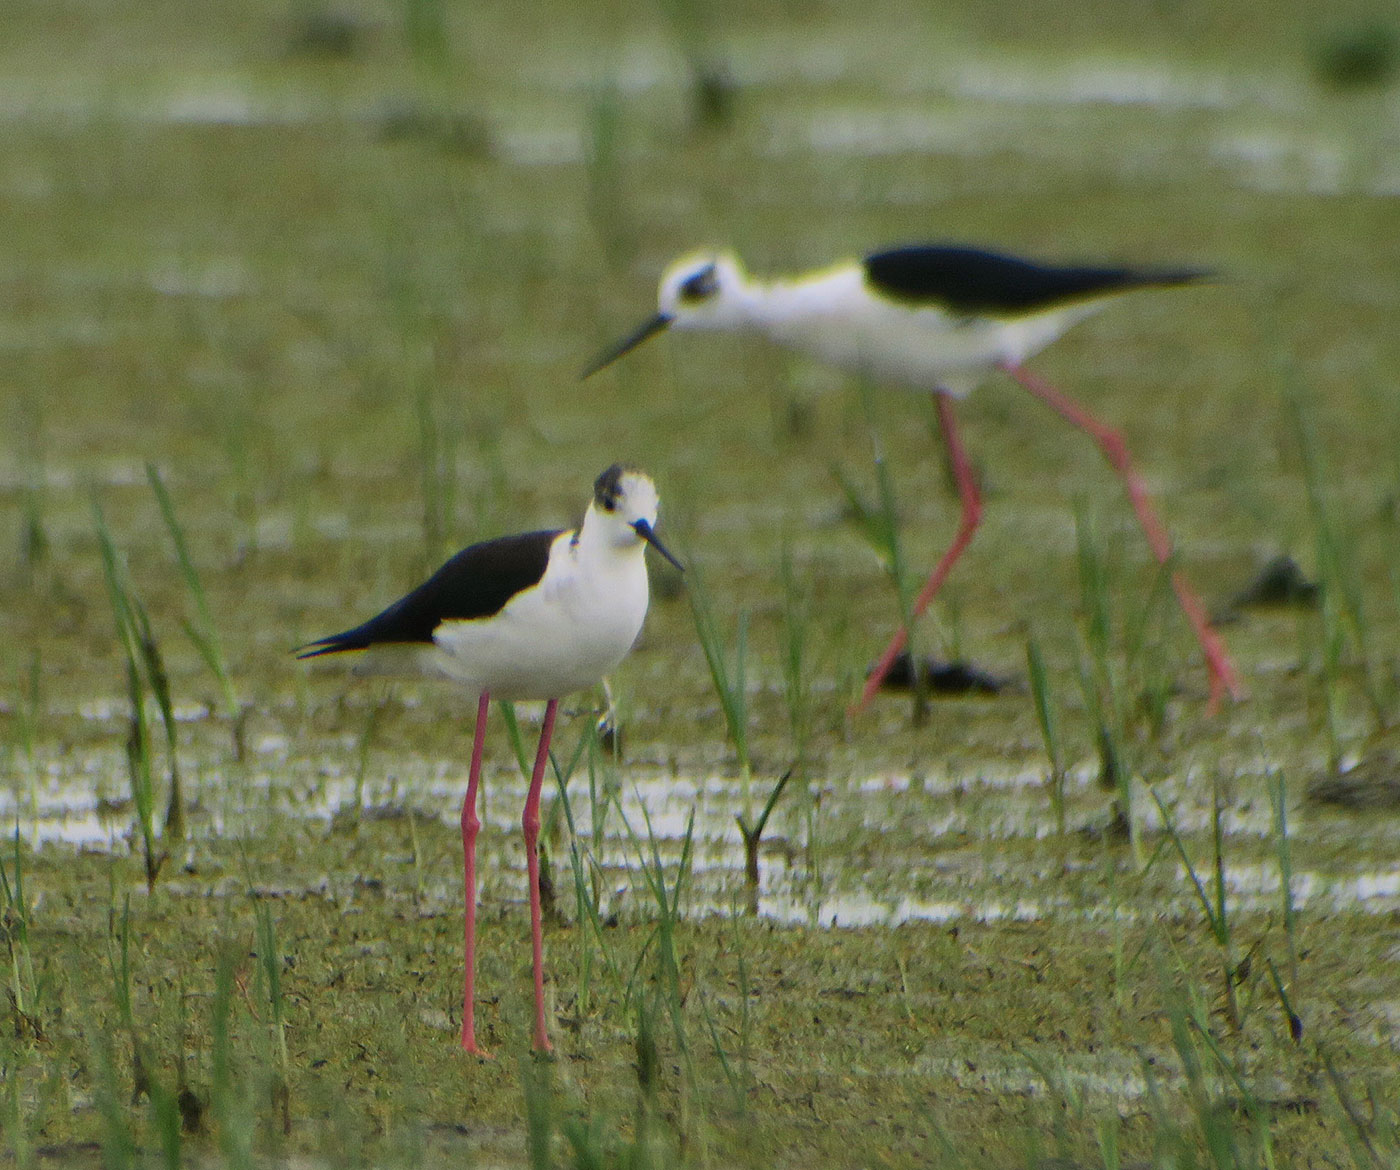 03_stelzenlaeufer_black-winged-stilt_neusiedler_2019-05-23_0718